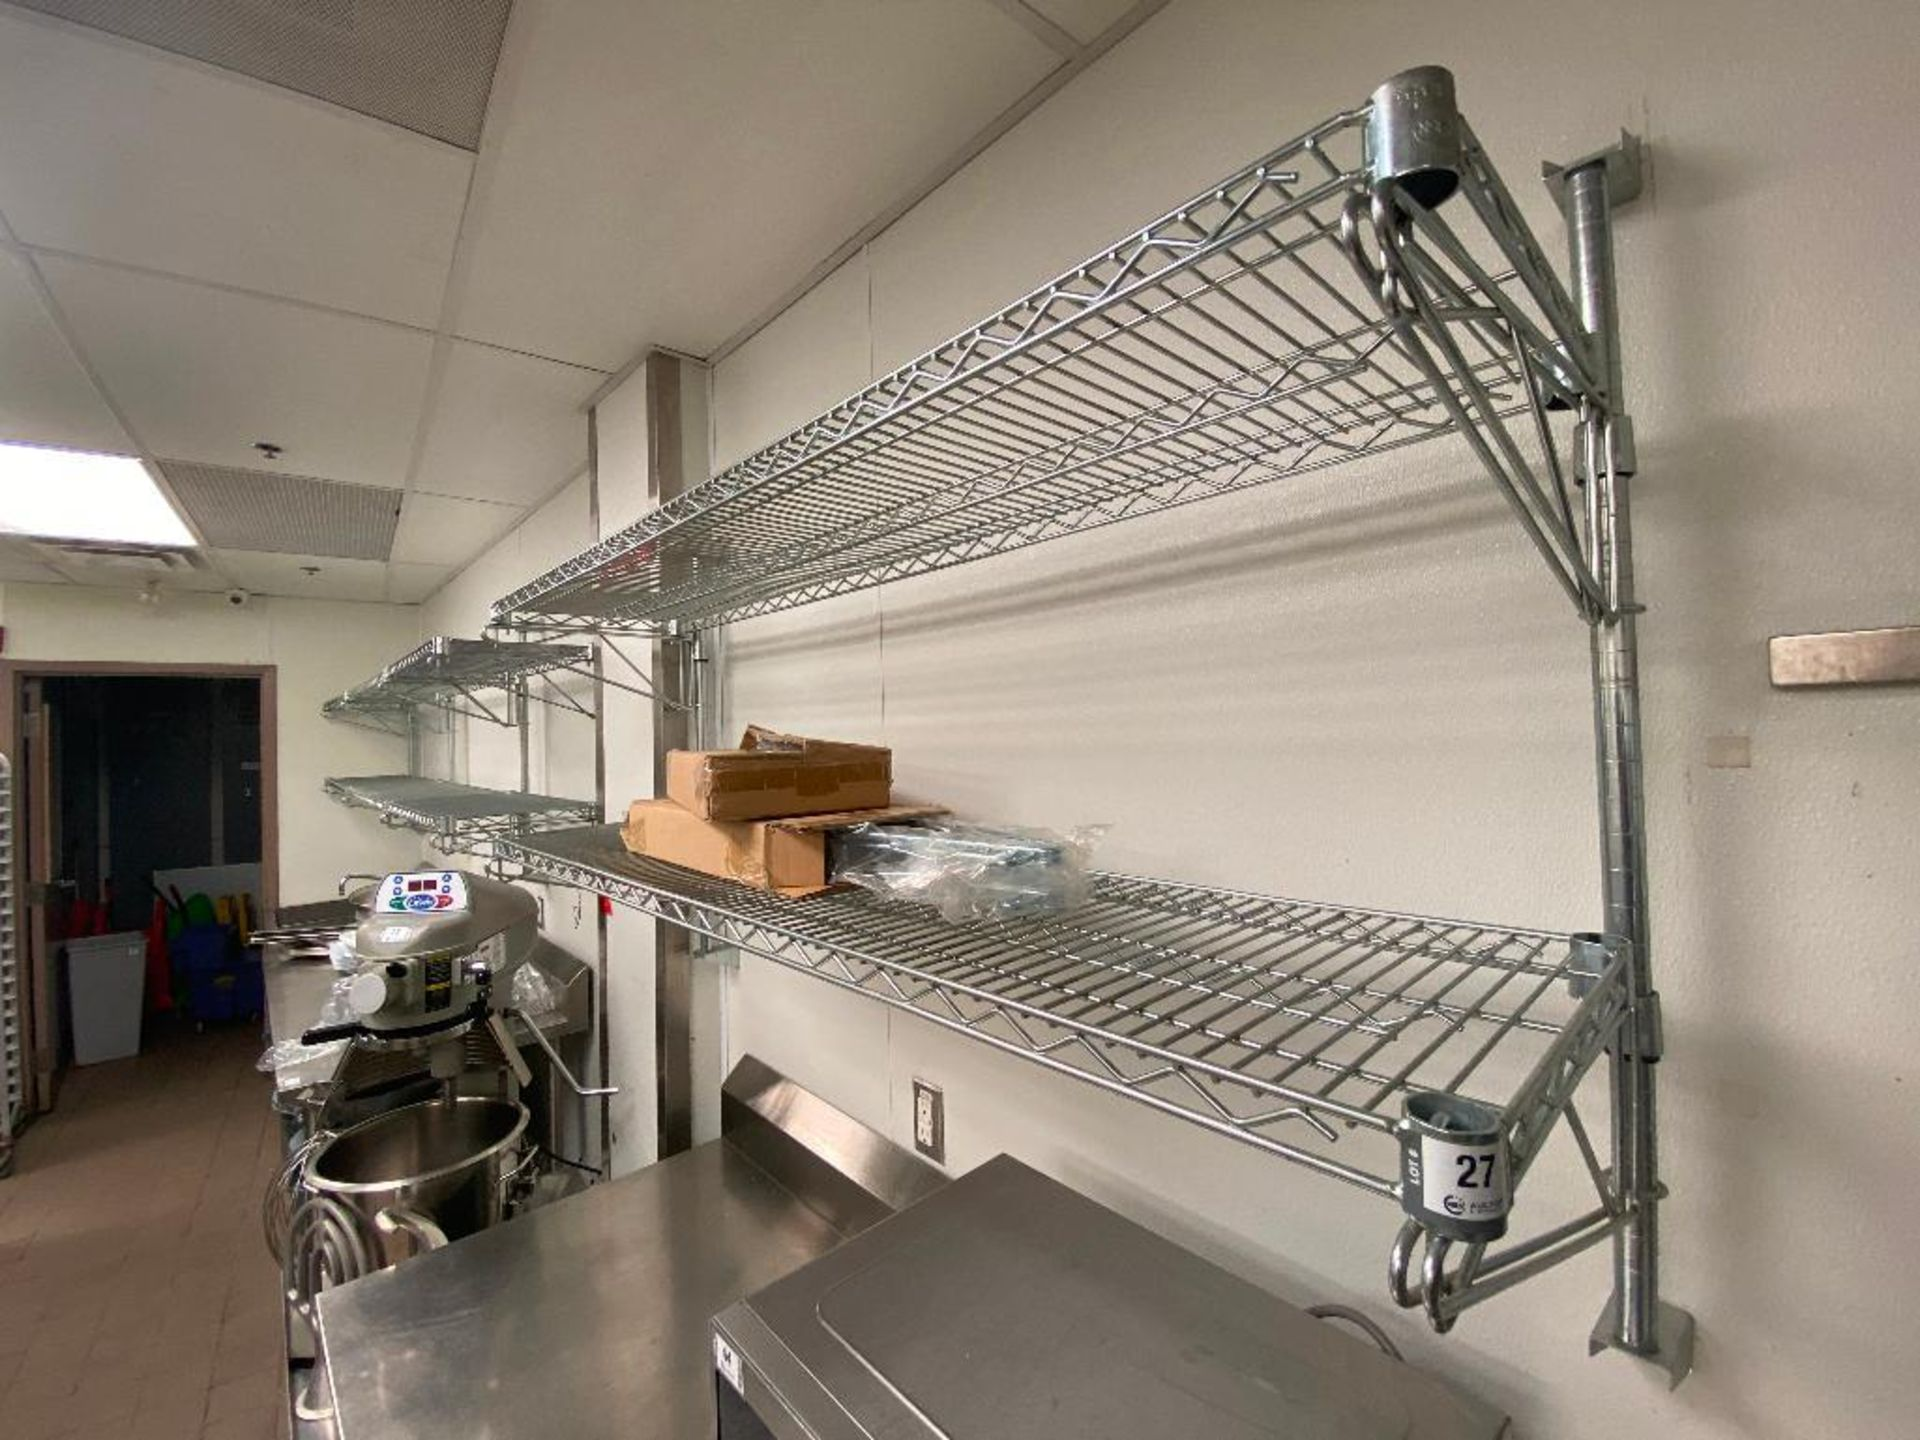 (8) CHROME WIRE WALL MOUNTED SHELVES, ASSORTED SIZES - NOTE: REQUIRES REMOVAL FROM WALL, PLEASE INSP - Image 2 of 3